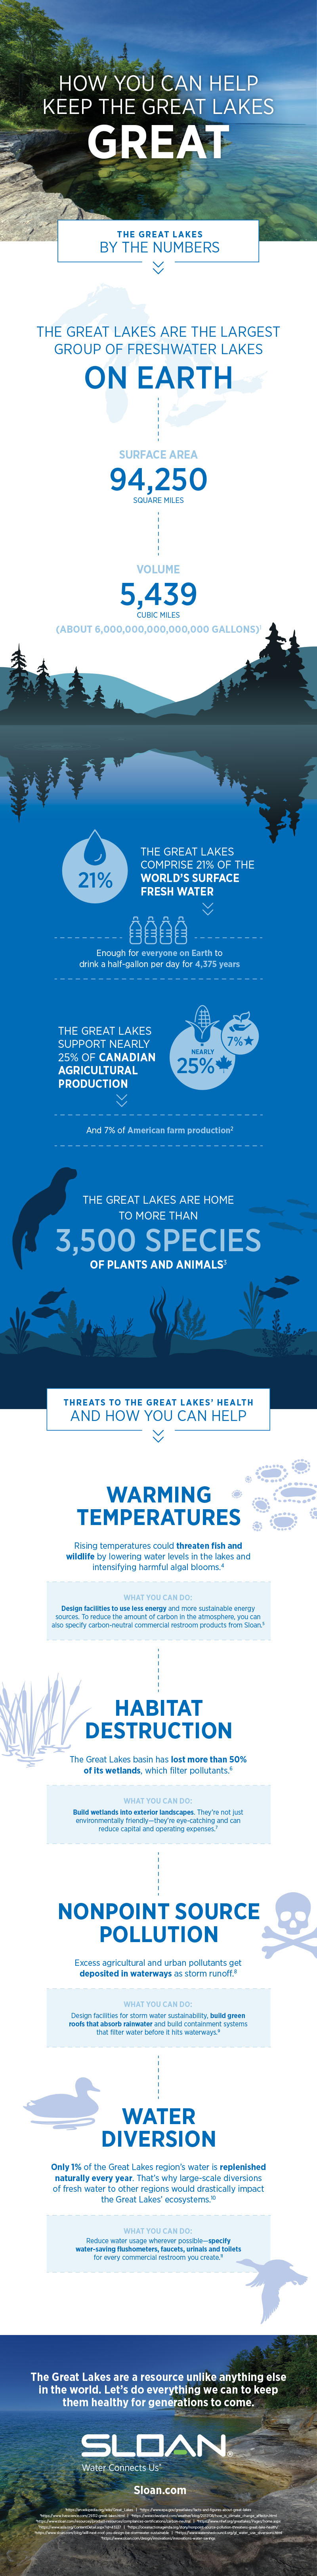 great-lakes-infographic